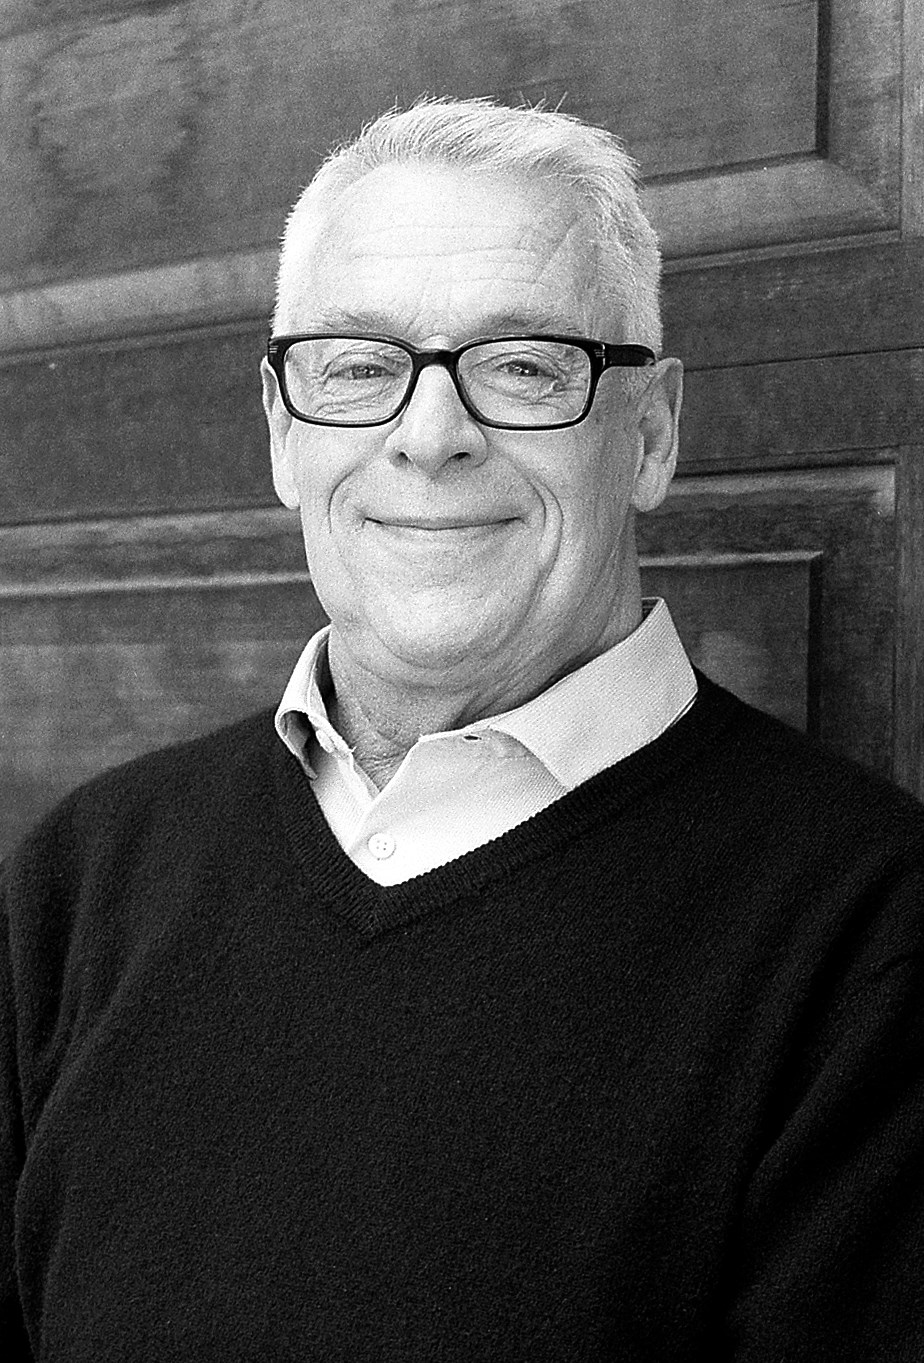 Cleve Jones - Cleve Jones is a human rights activist, lecturer, and author of